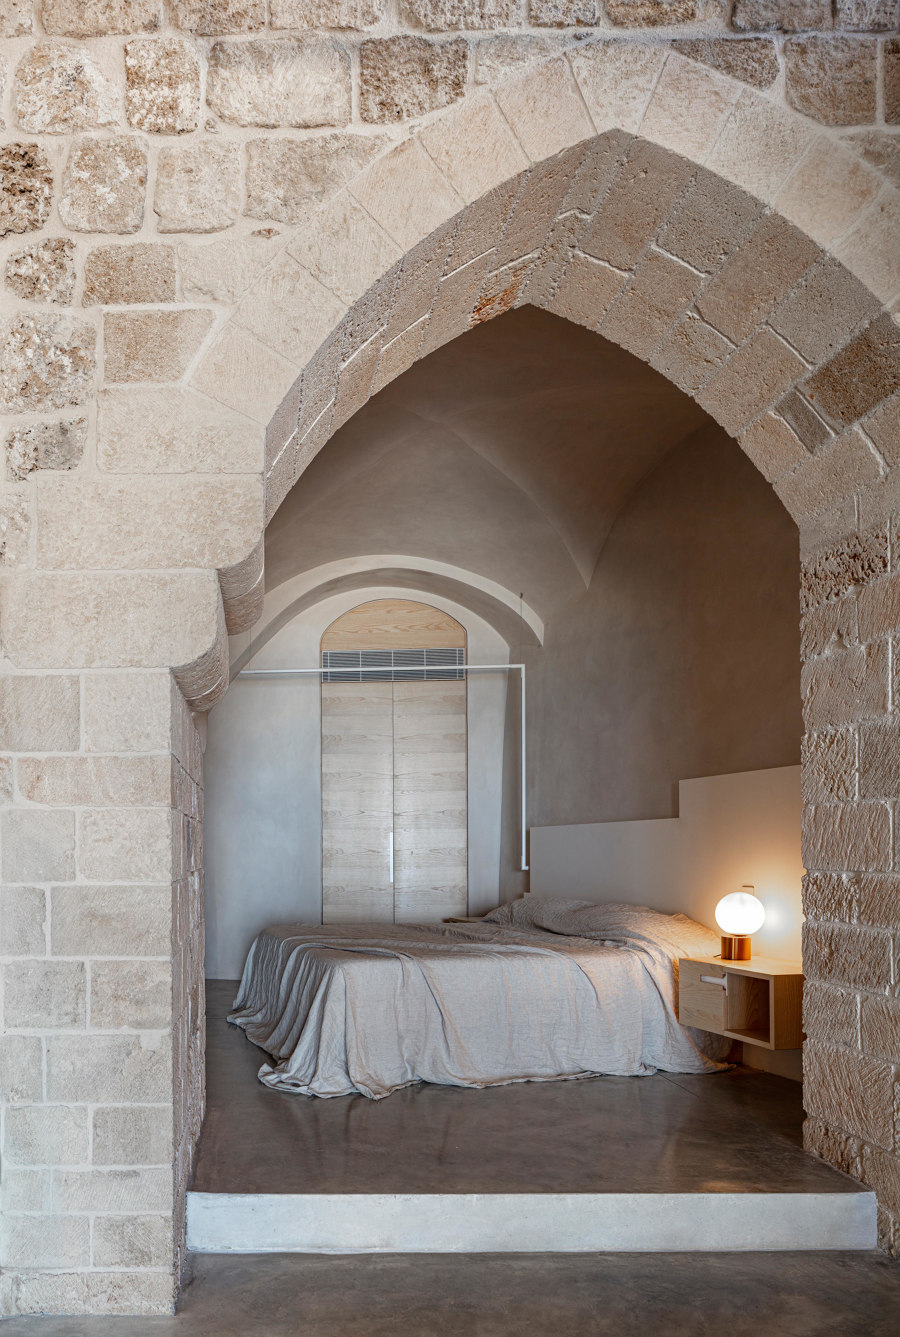 If walls could talk: old structures reborn | News